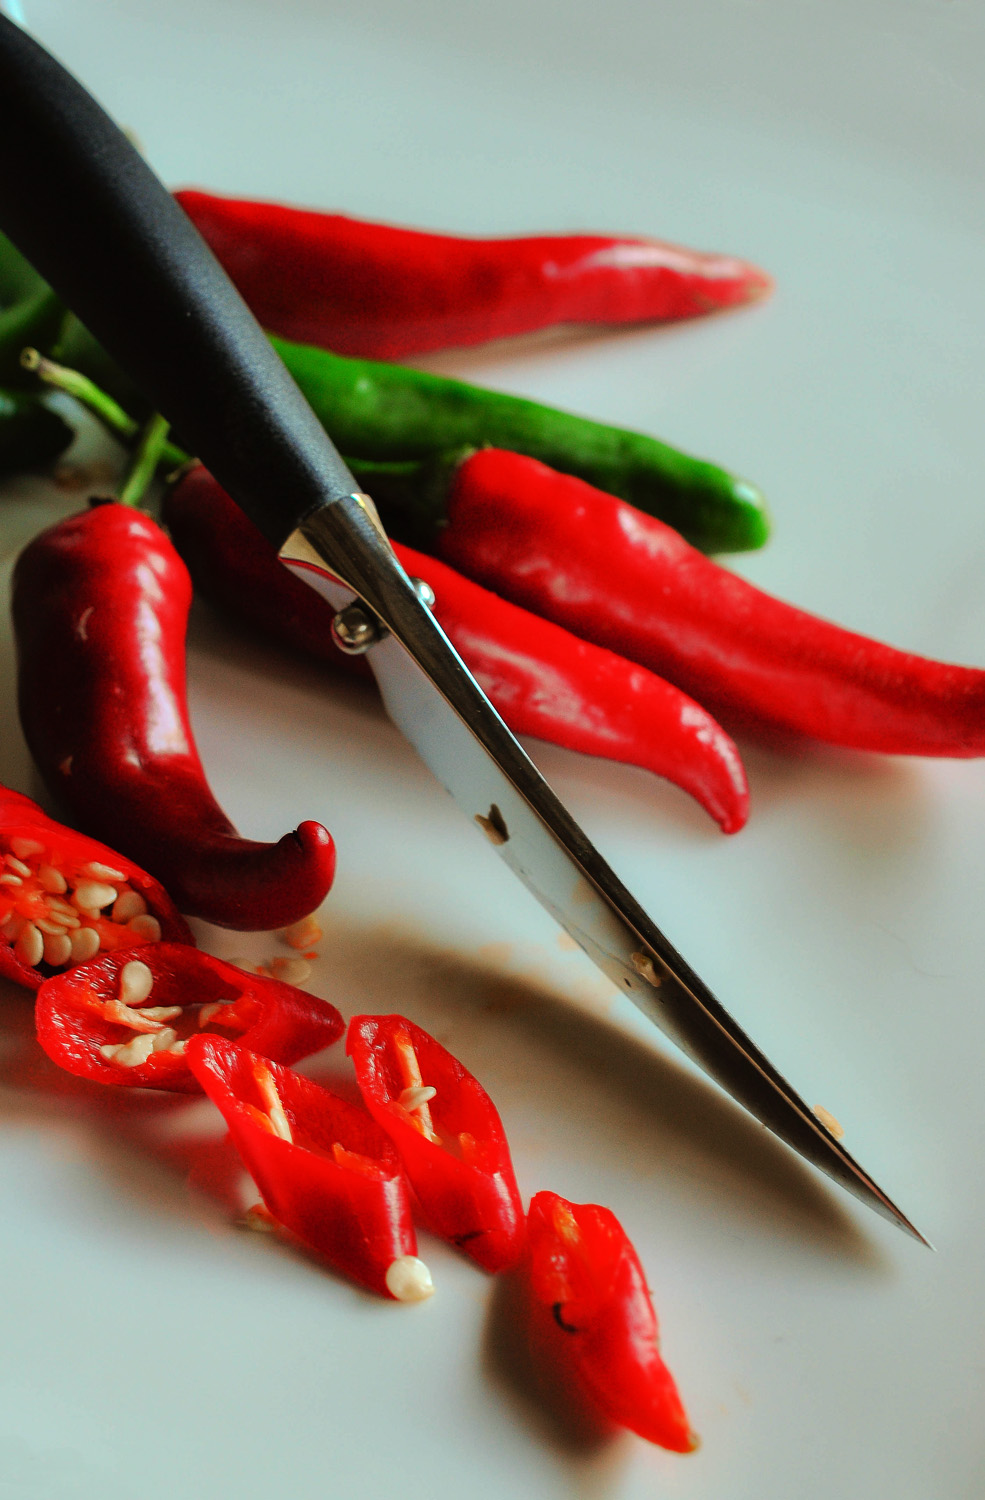 Chillies knife and white plate